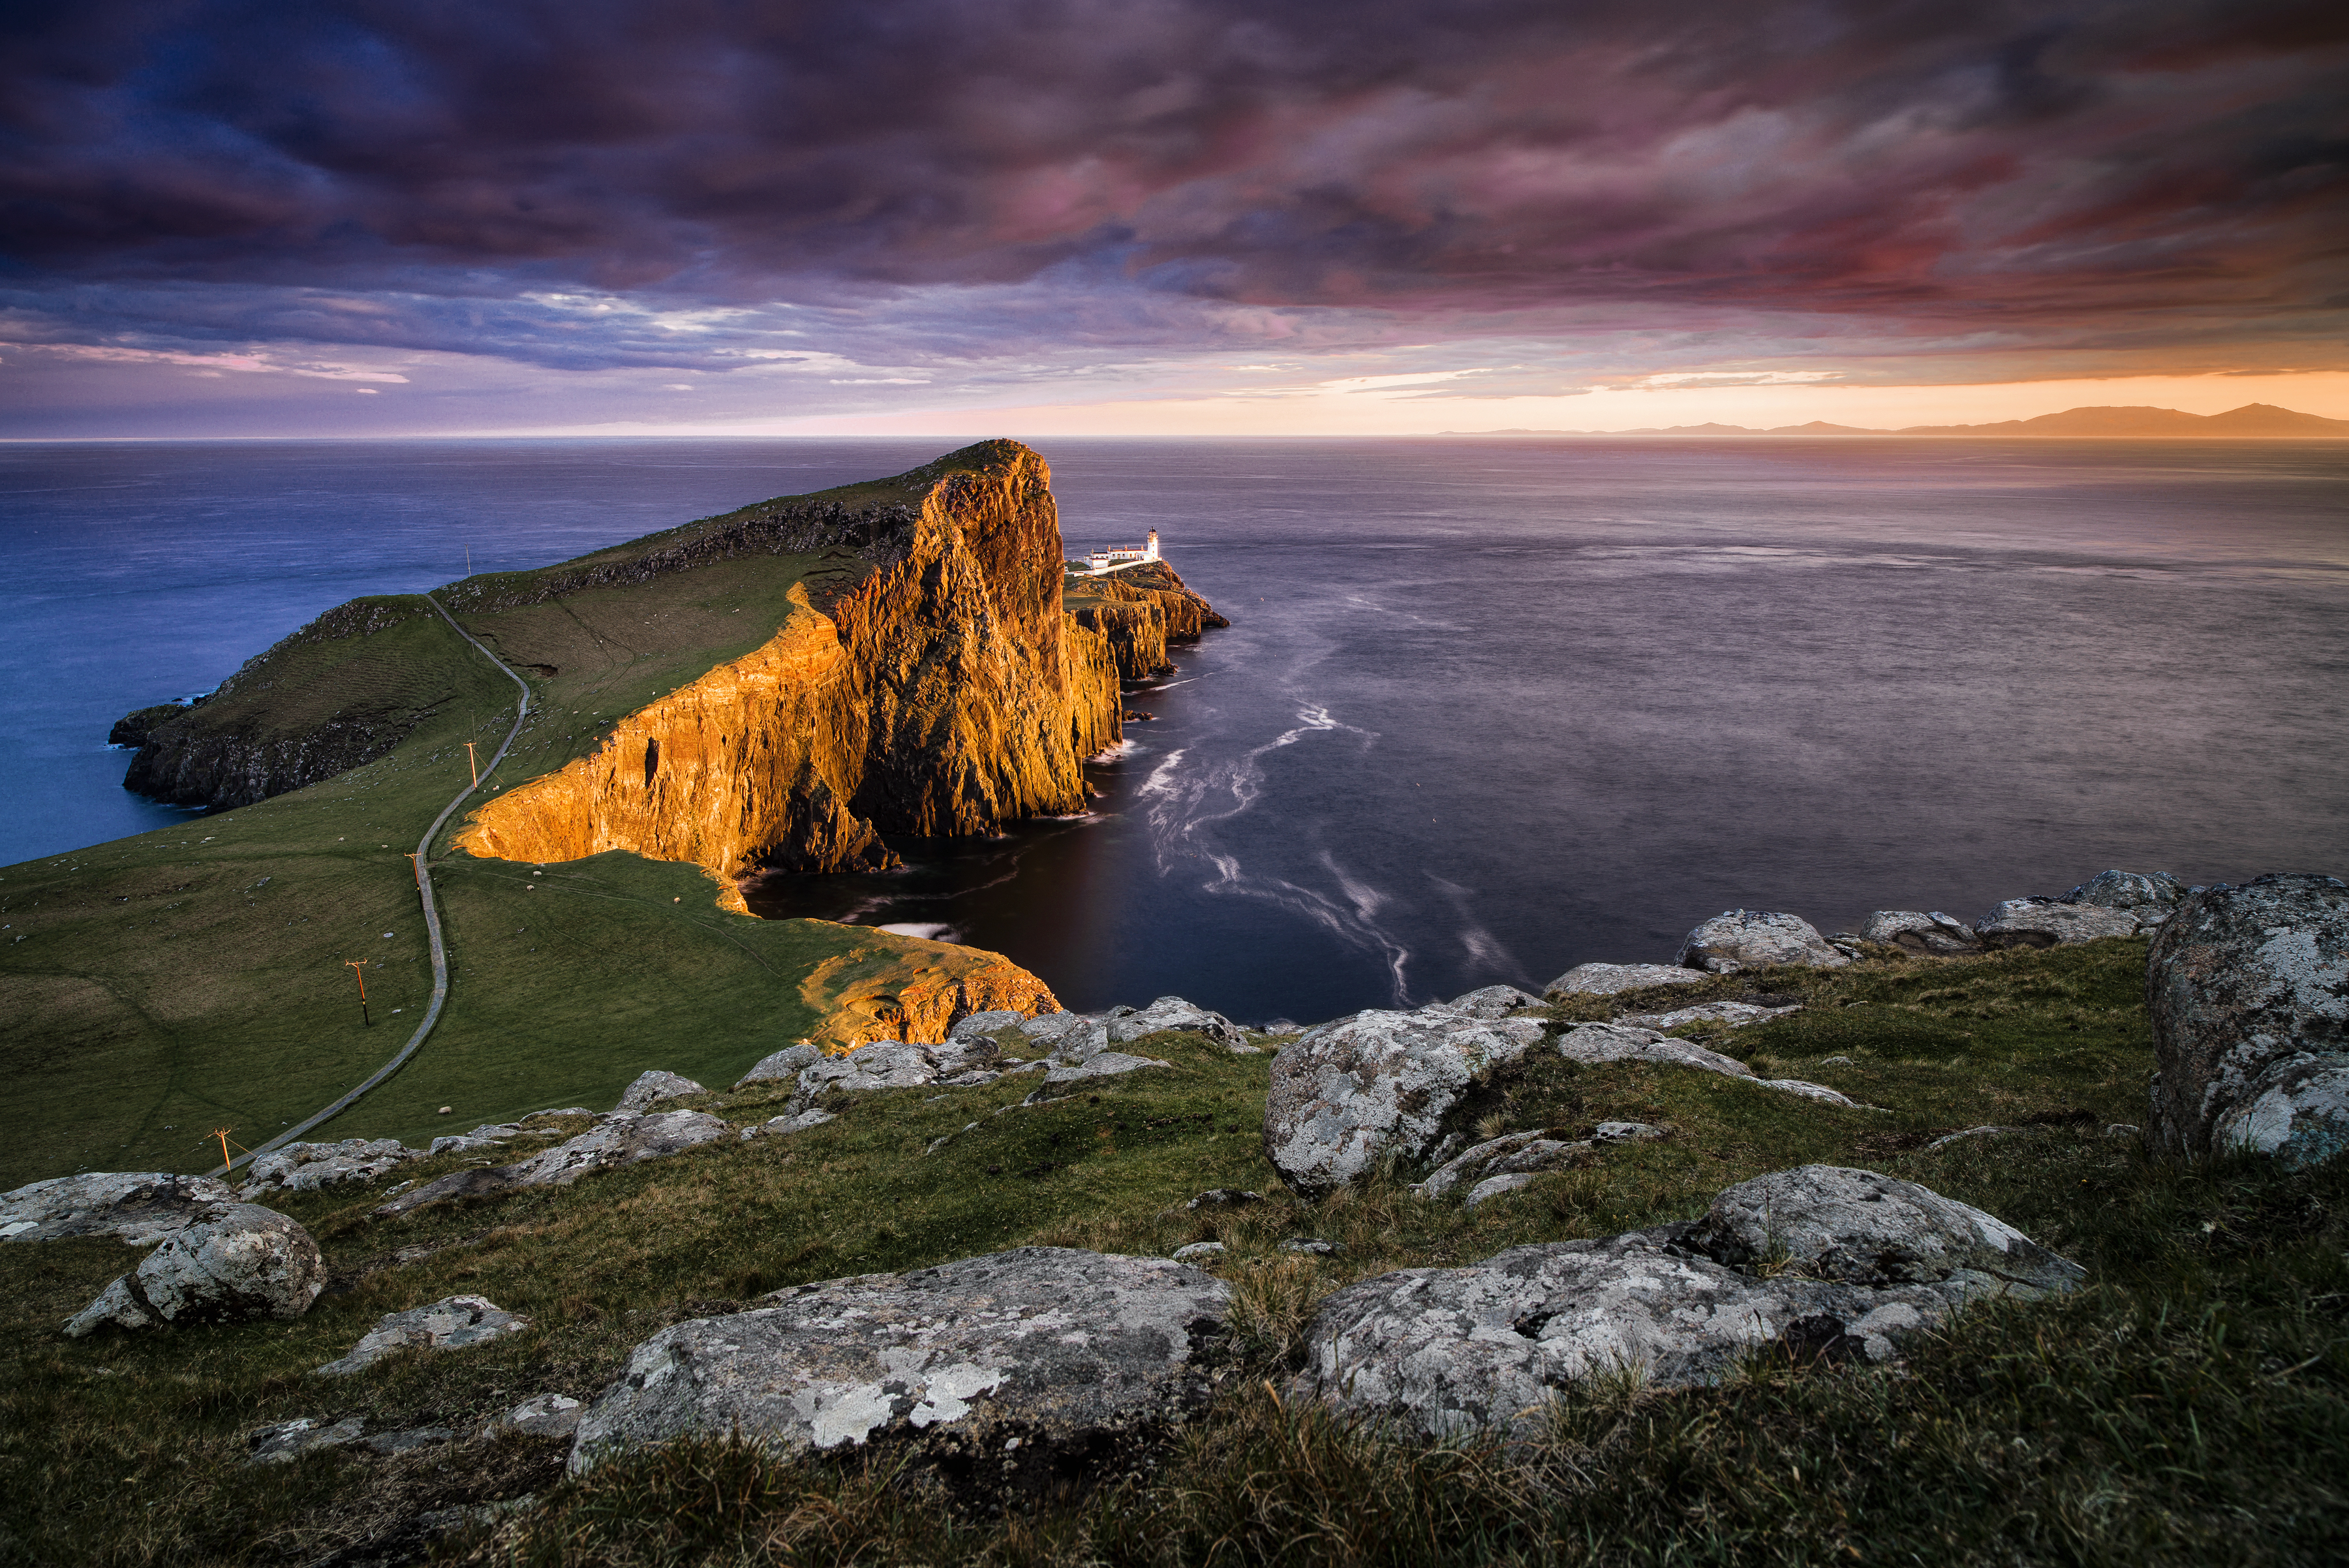 Spooky Wild Scenes Straight Out Of Grimms Fairy Tales further Cherry Blossom Dress further 13938312928 furthermore 20 Wilderness Areas See You Die as well Neist Point. on places that are straight out of fairy tales